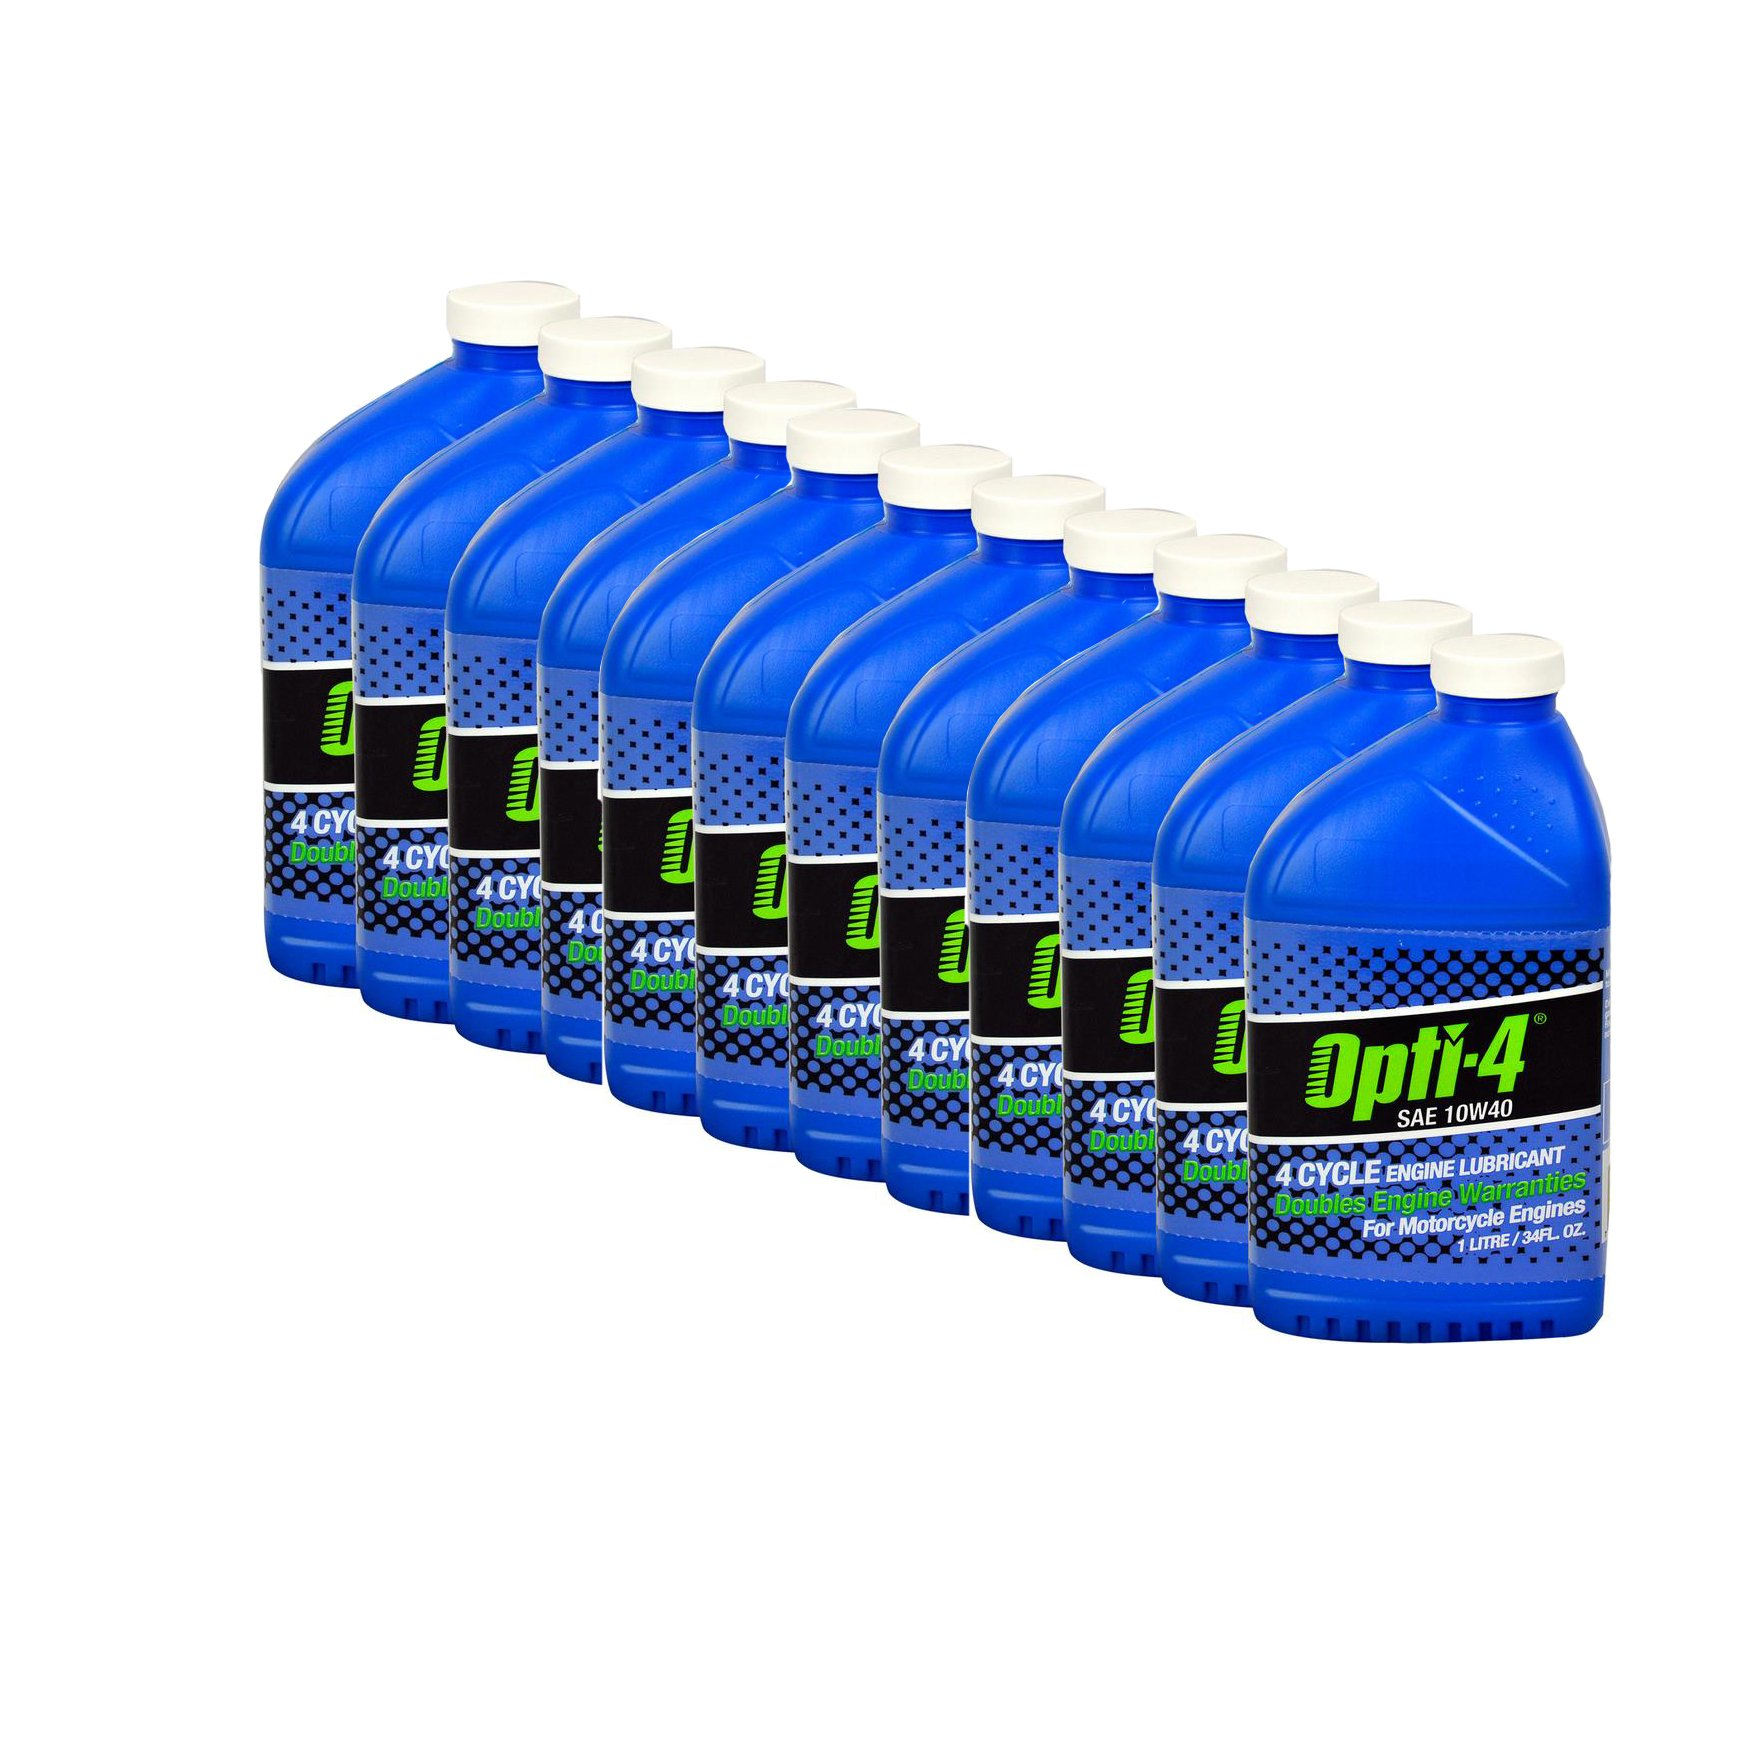 Opti-4 44121 12PK SAE 10W40 34Oz 4-Cycle Engine Lubricant for ATVs, Motorcycles